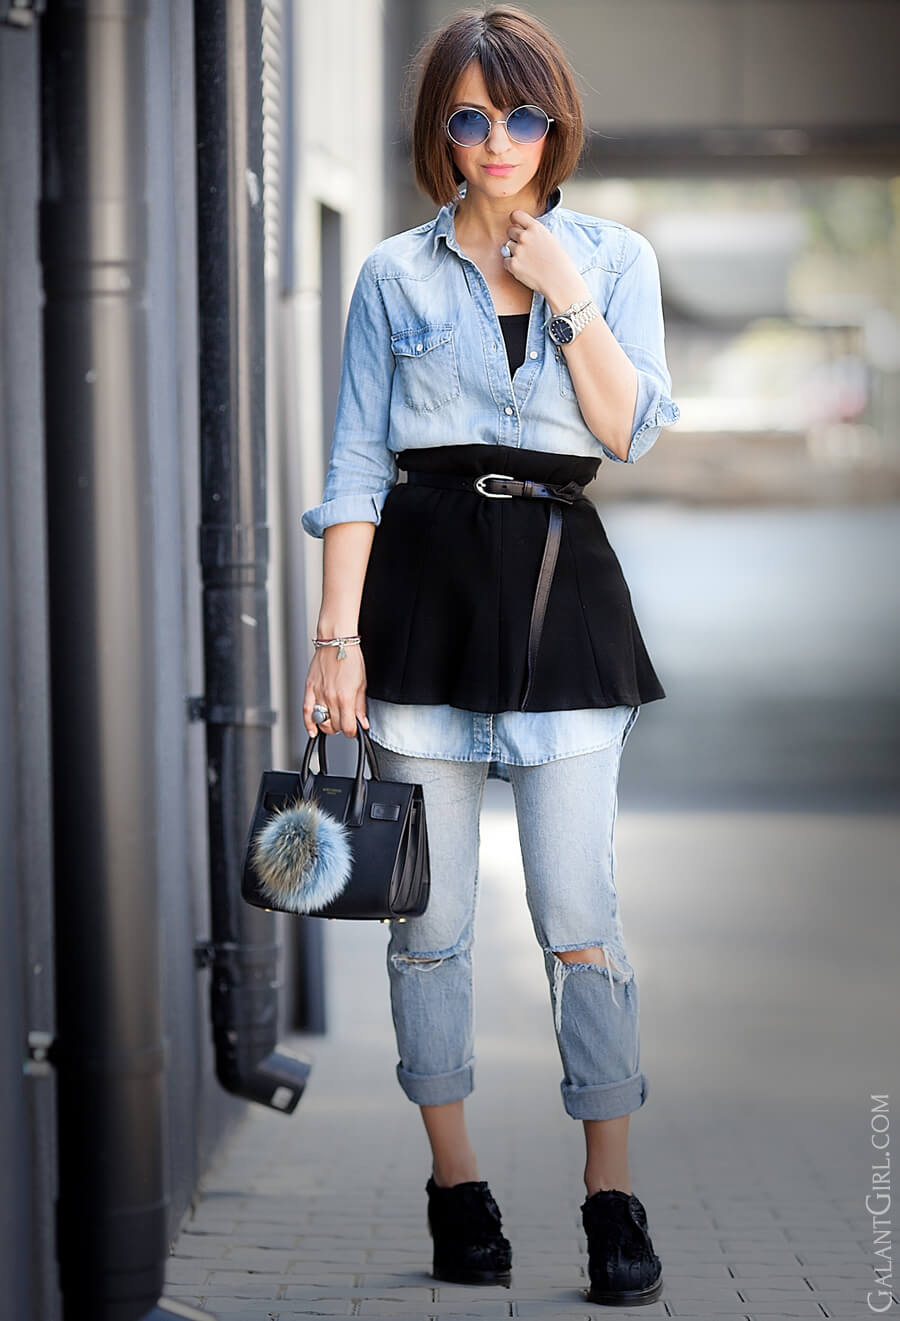 chic-outfit-ideas-for-spring-2016